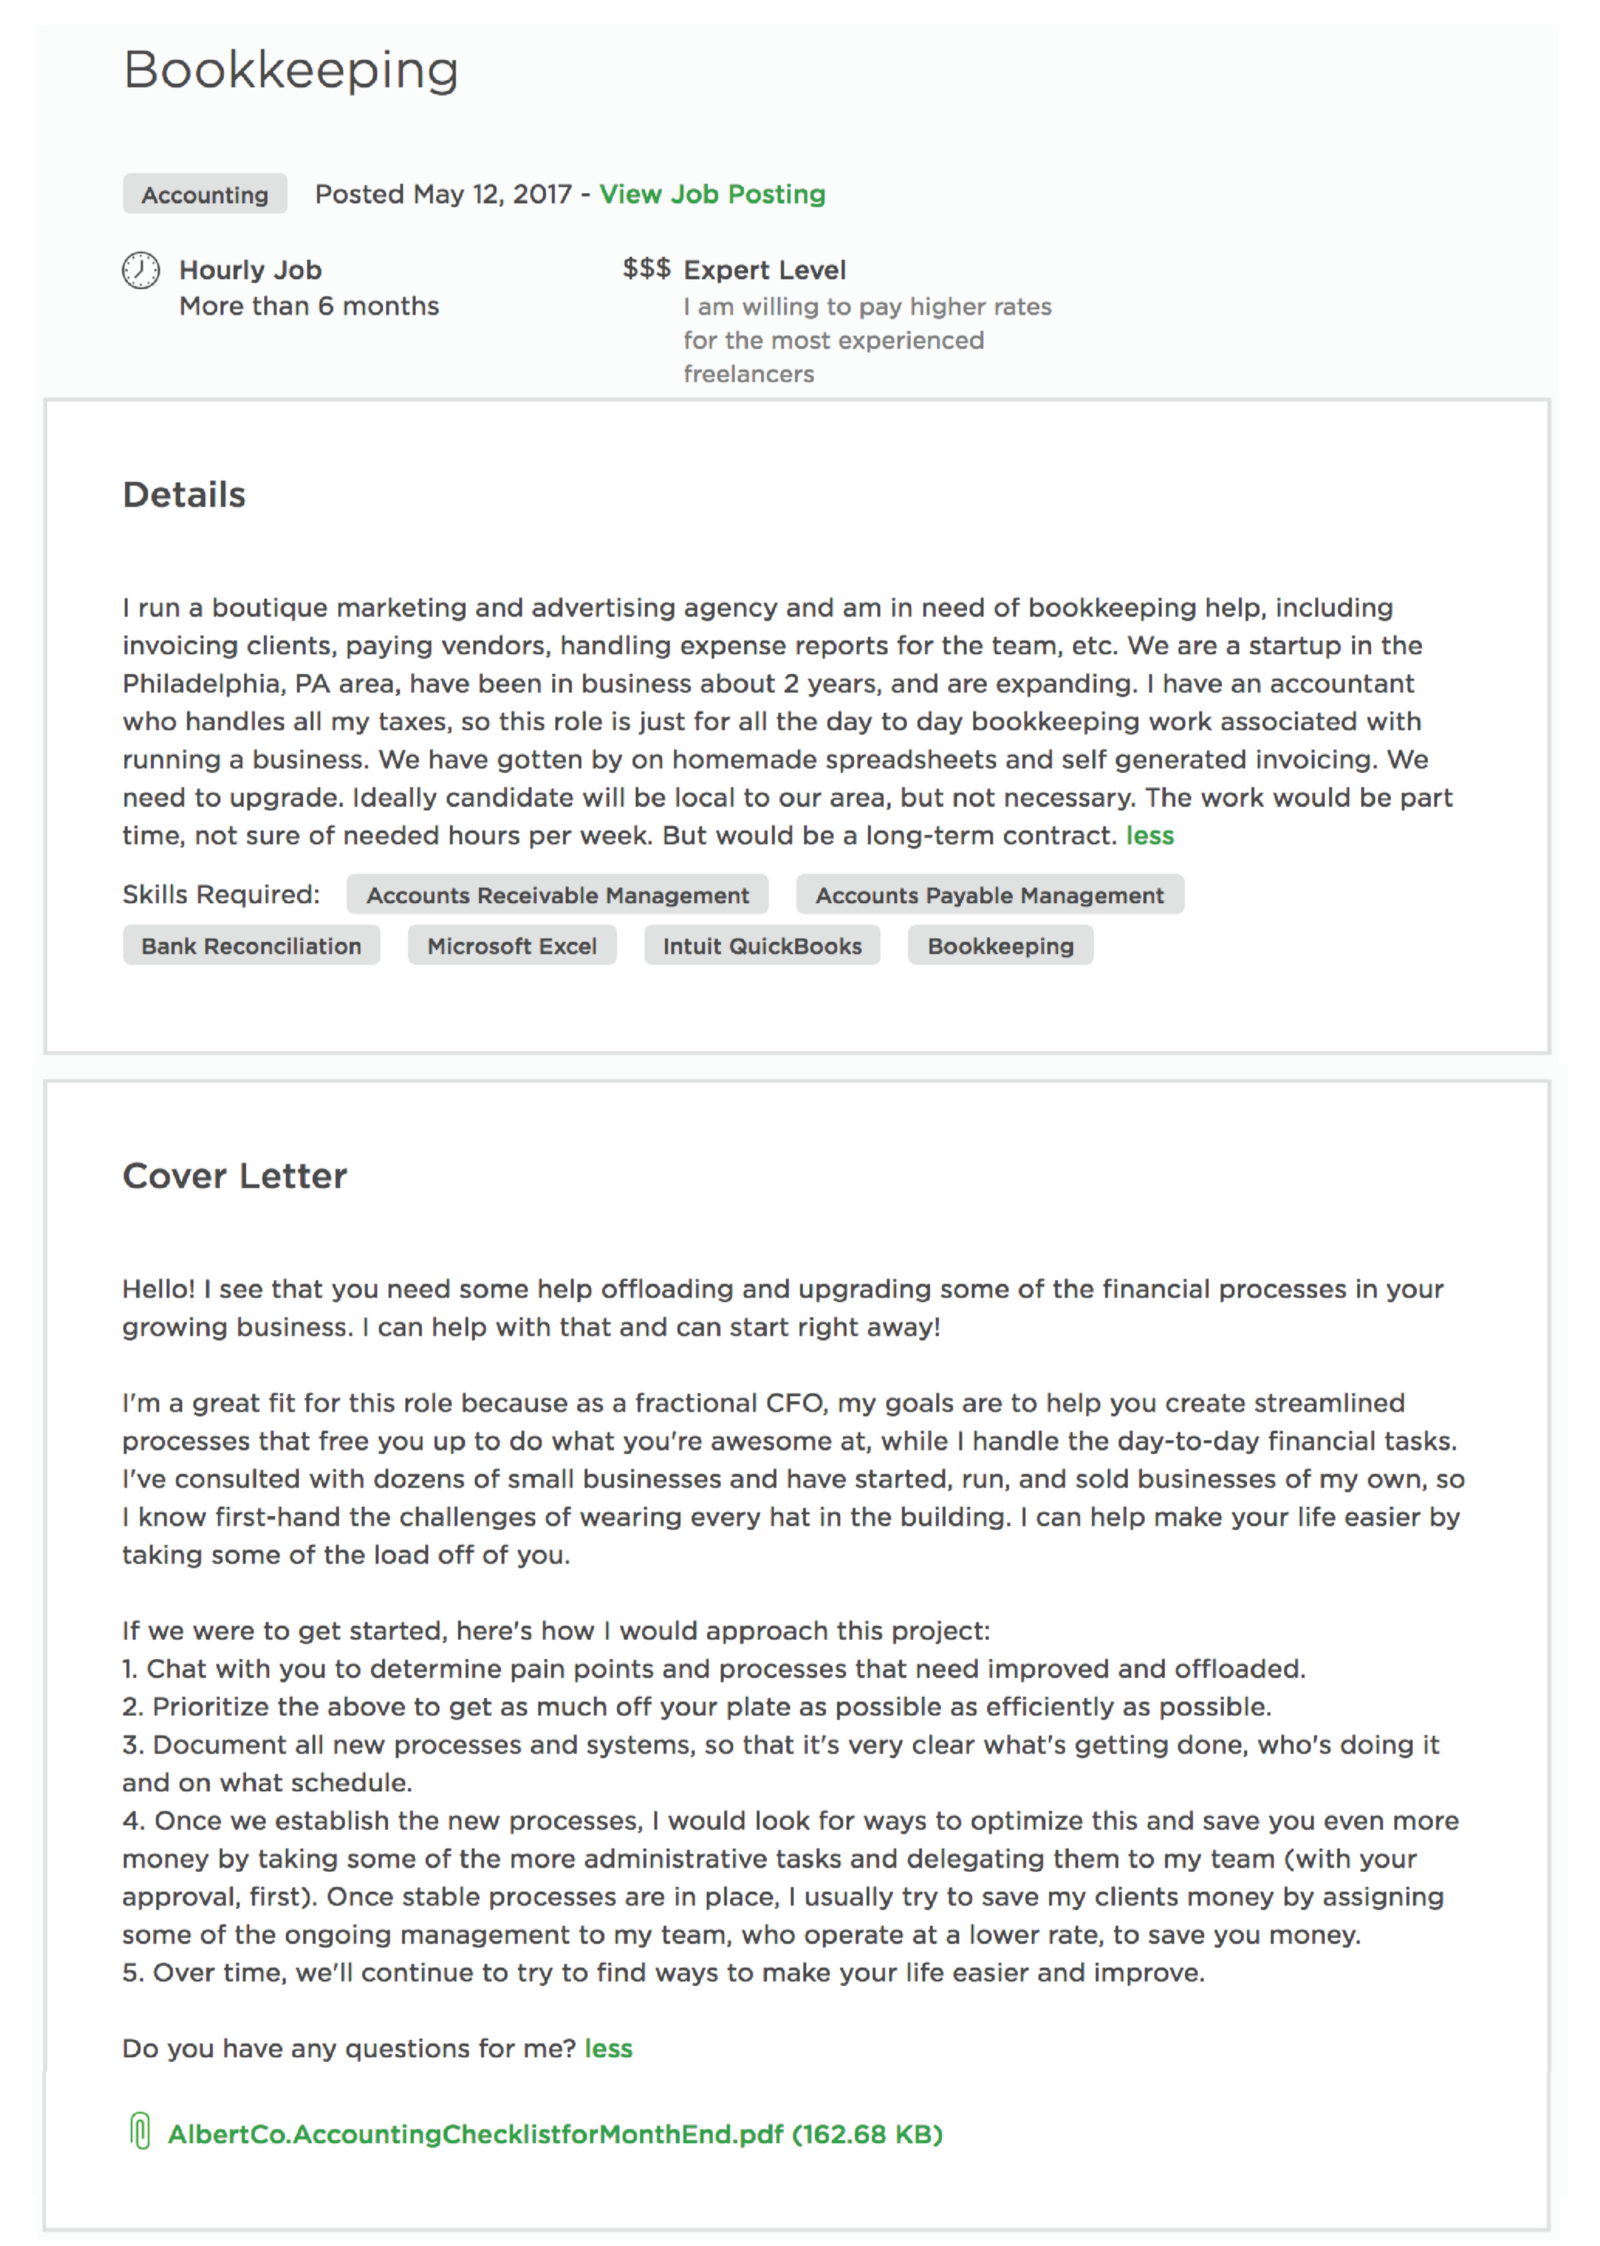 How To Write A Proposal On Upwork That Actually Gets You Hired Proposal Writing Upwork Job Posting